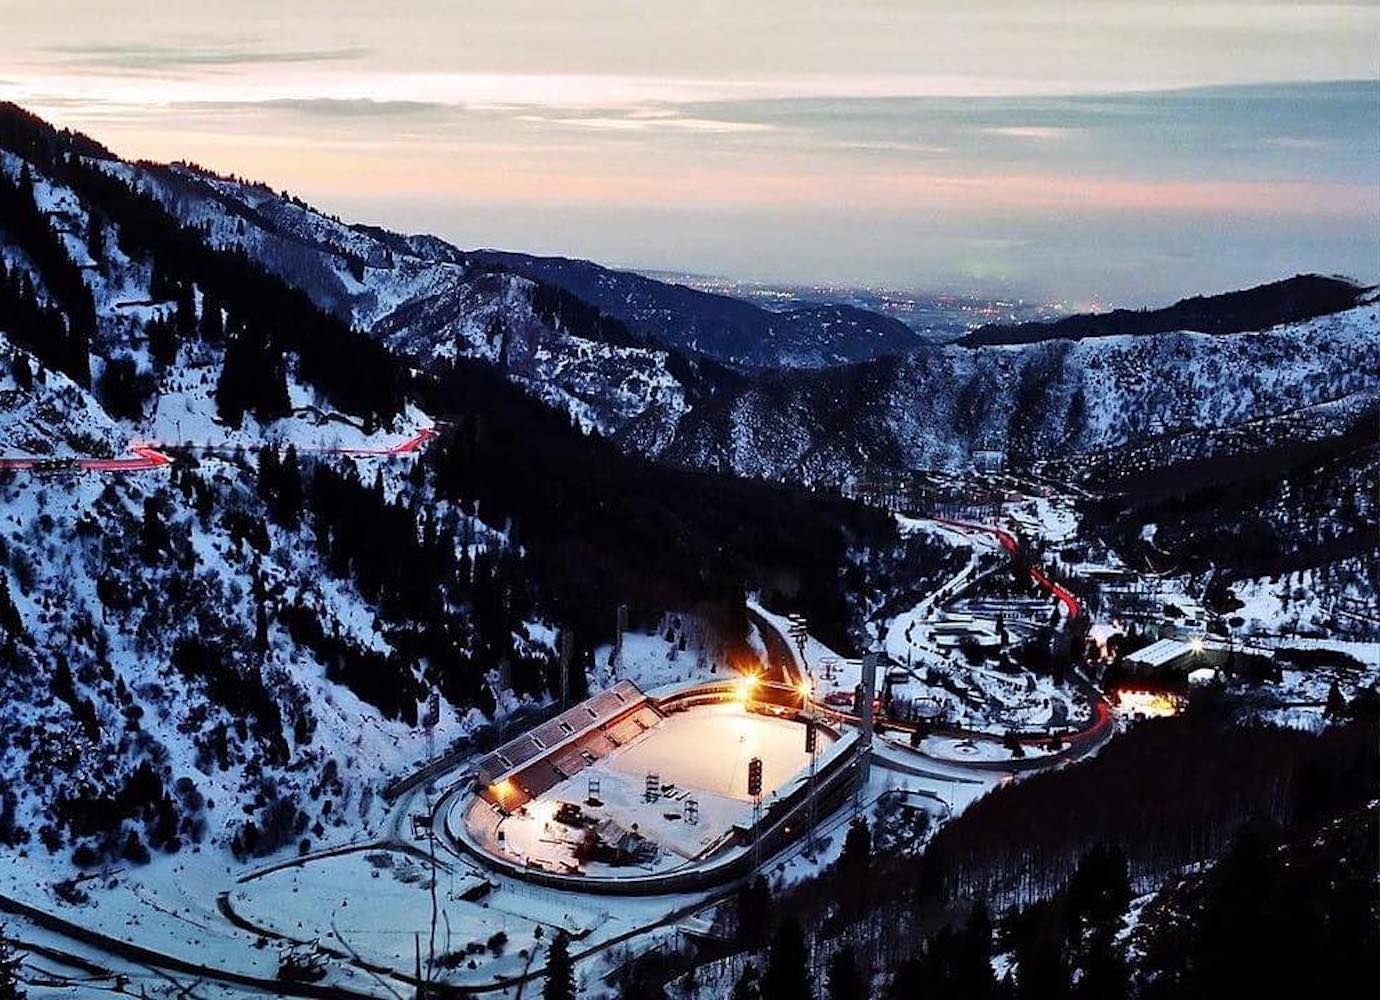 Kazakhstan's Medeu open-air stadium hosts one of the highest ice rinks in the world | Concrete Ideas